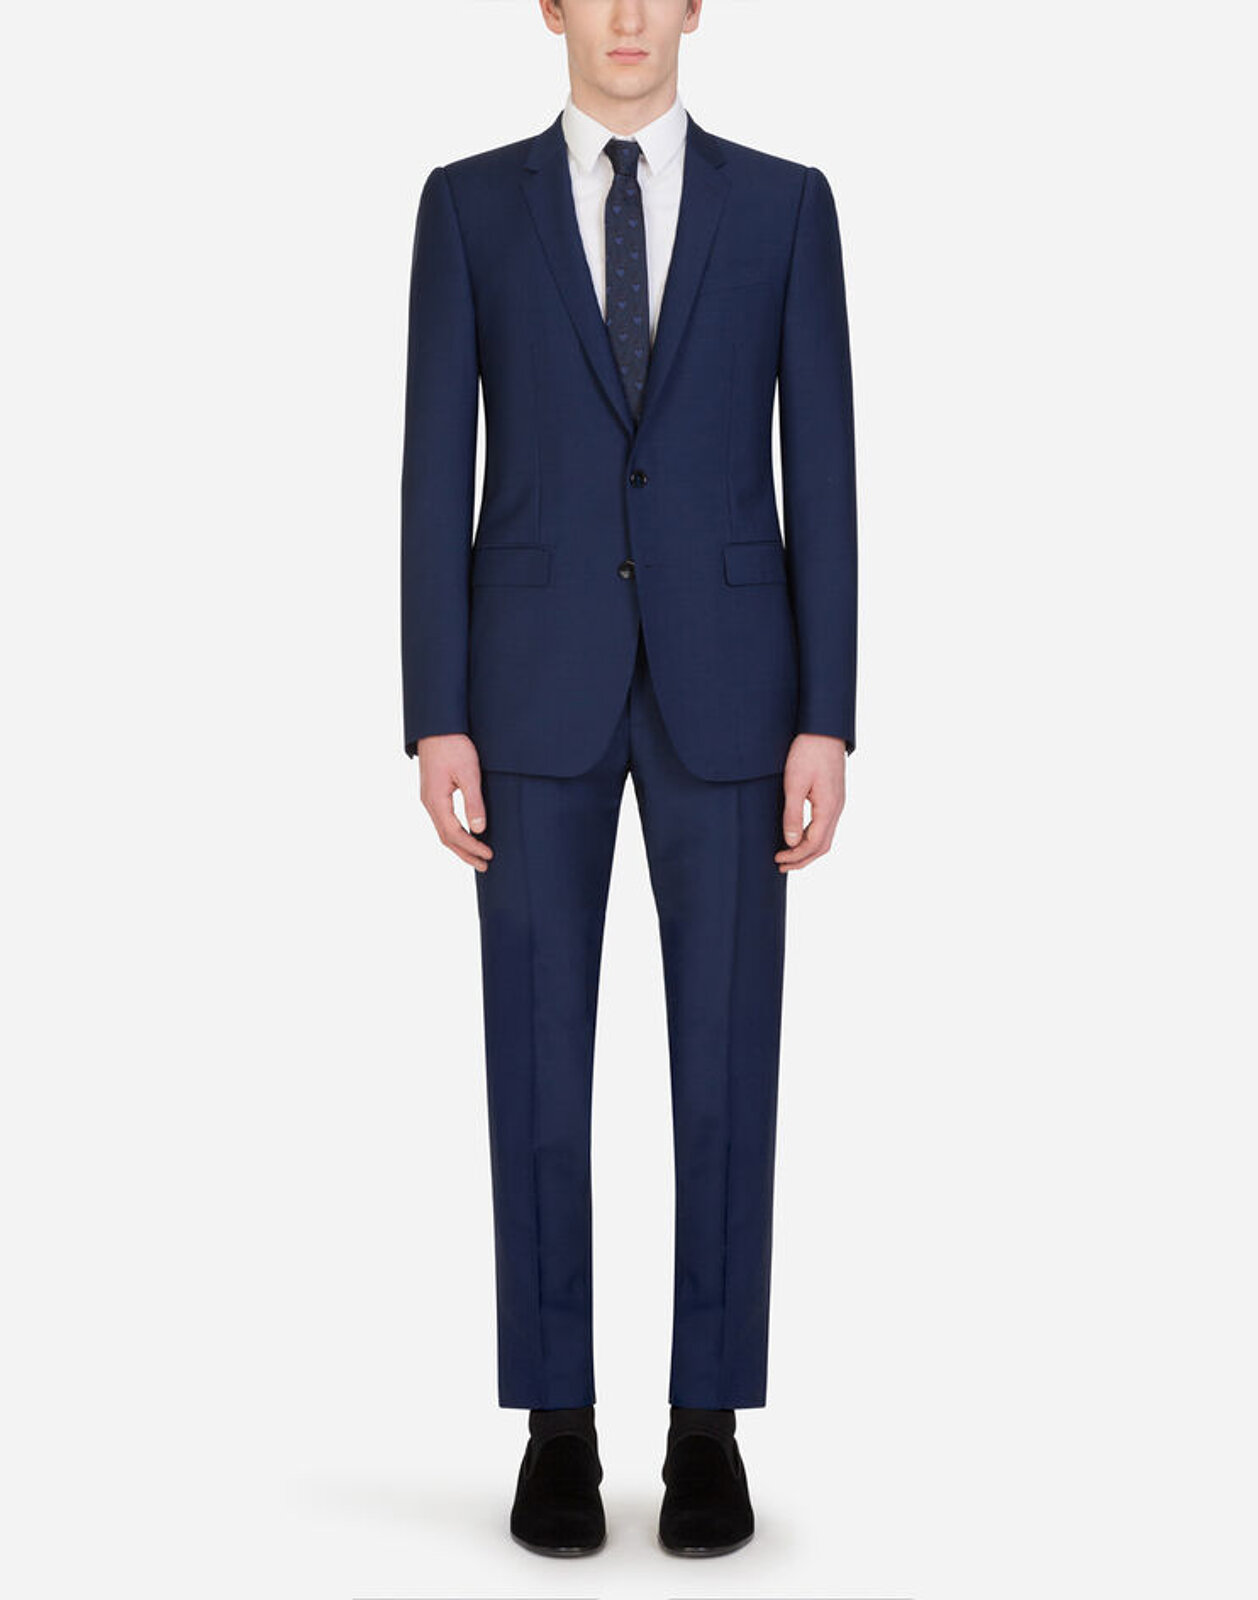 Martini Wool Suit - Dolce & Gabbana